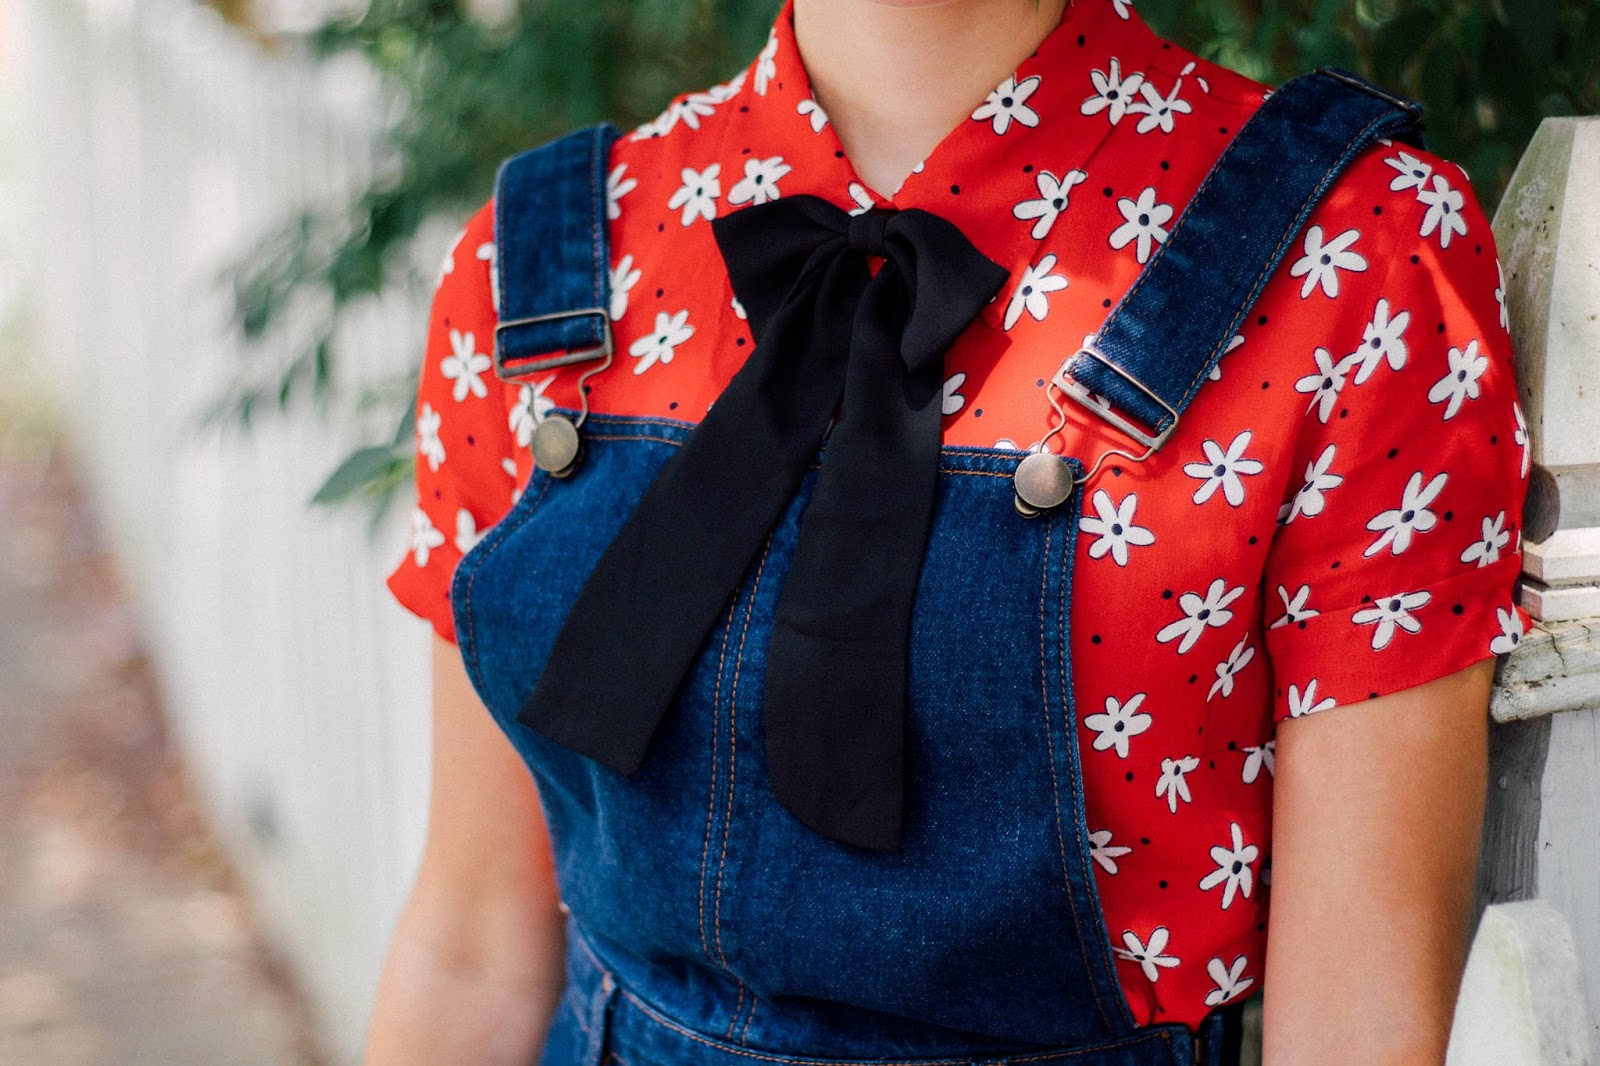 vintage, retro, style, vintage style, retro style, asos, denim overalls, high waisted, cute, girly, feminine, summer outfit, bow tie, floral button up, taylor swift style, personal style, blogger, movie blogger, mad men style,